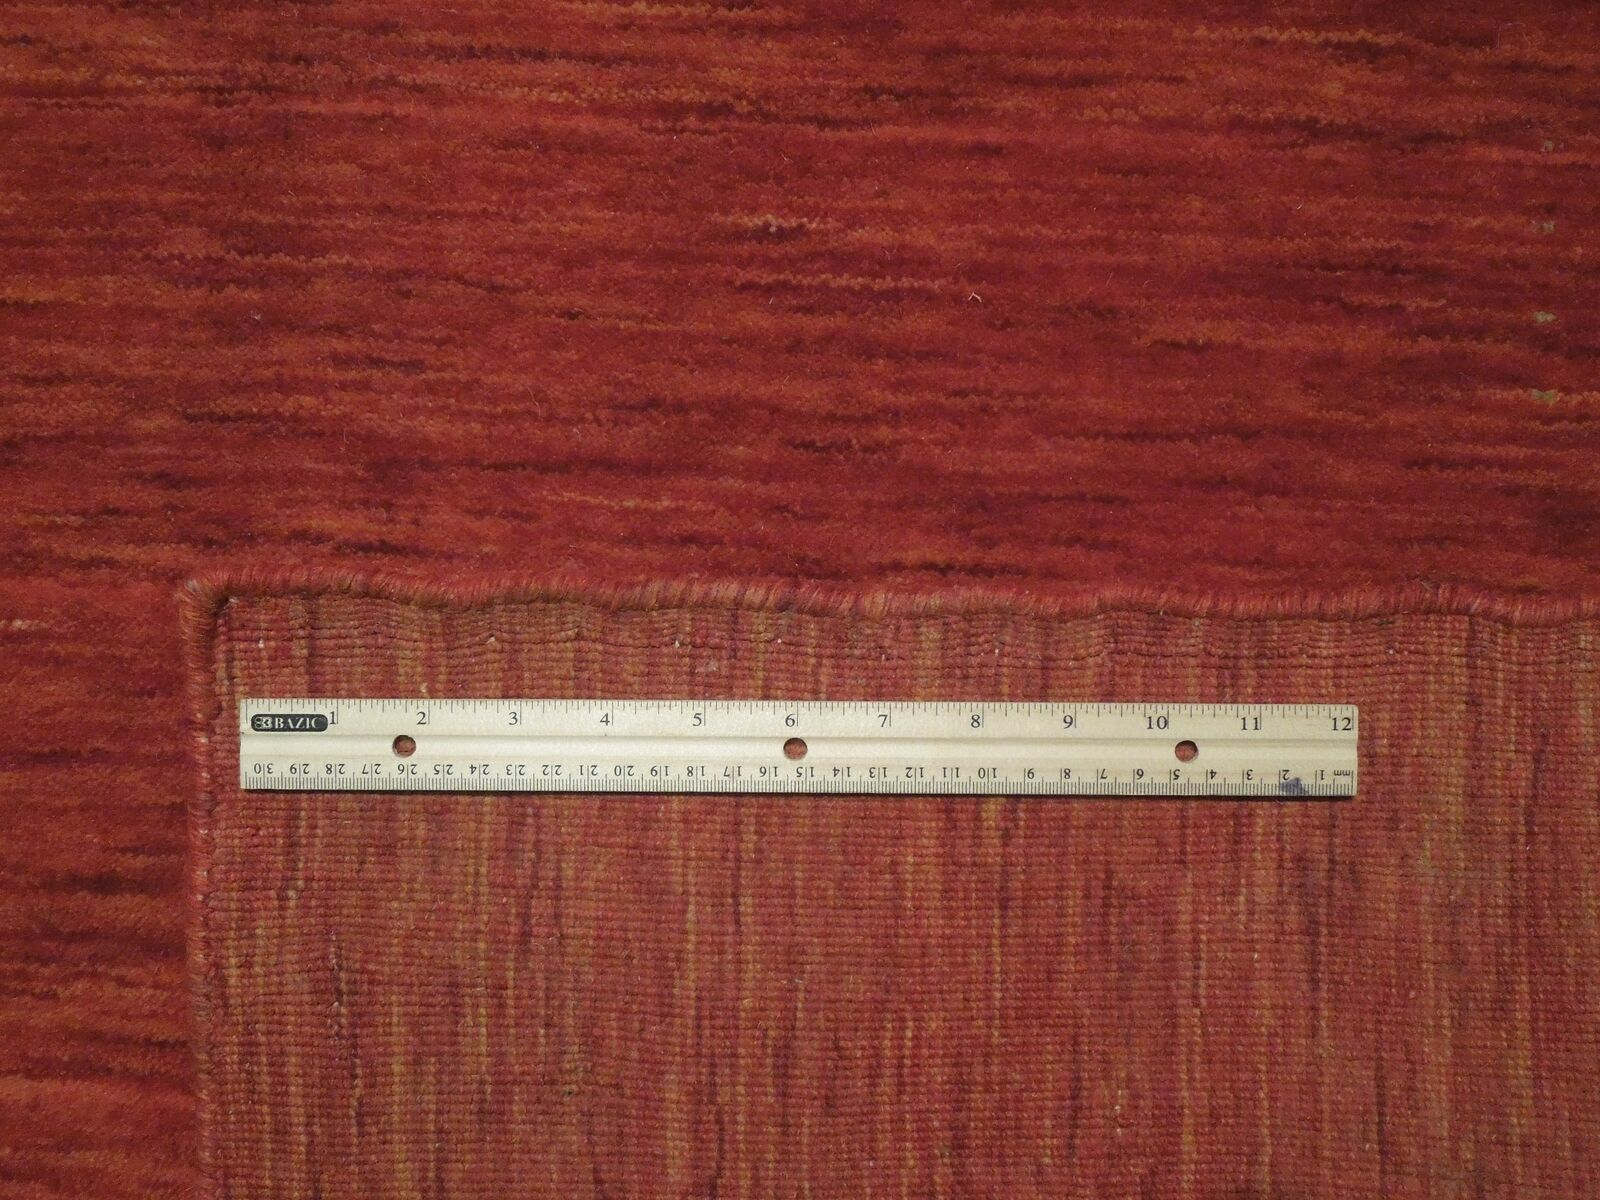 5' x 7' Shades of Red Soft Modern Red Gabbeh Wool Hand-Knotted Rug image 8